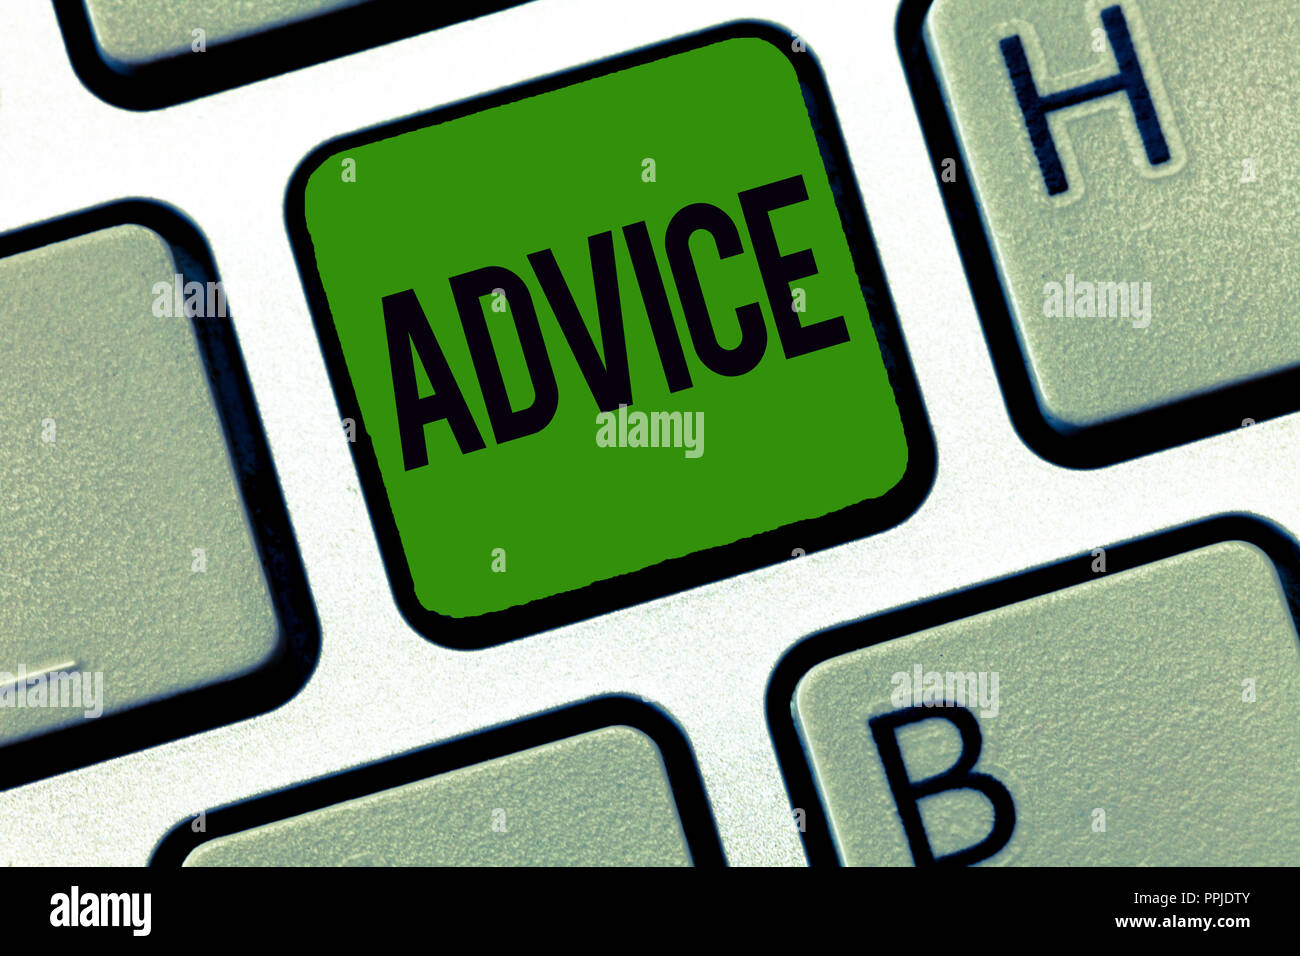 Word writing text Advice. Business concept for guidance or recommendations offered with regard prudent action. - Stock Image